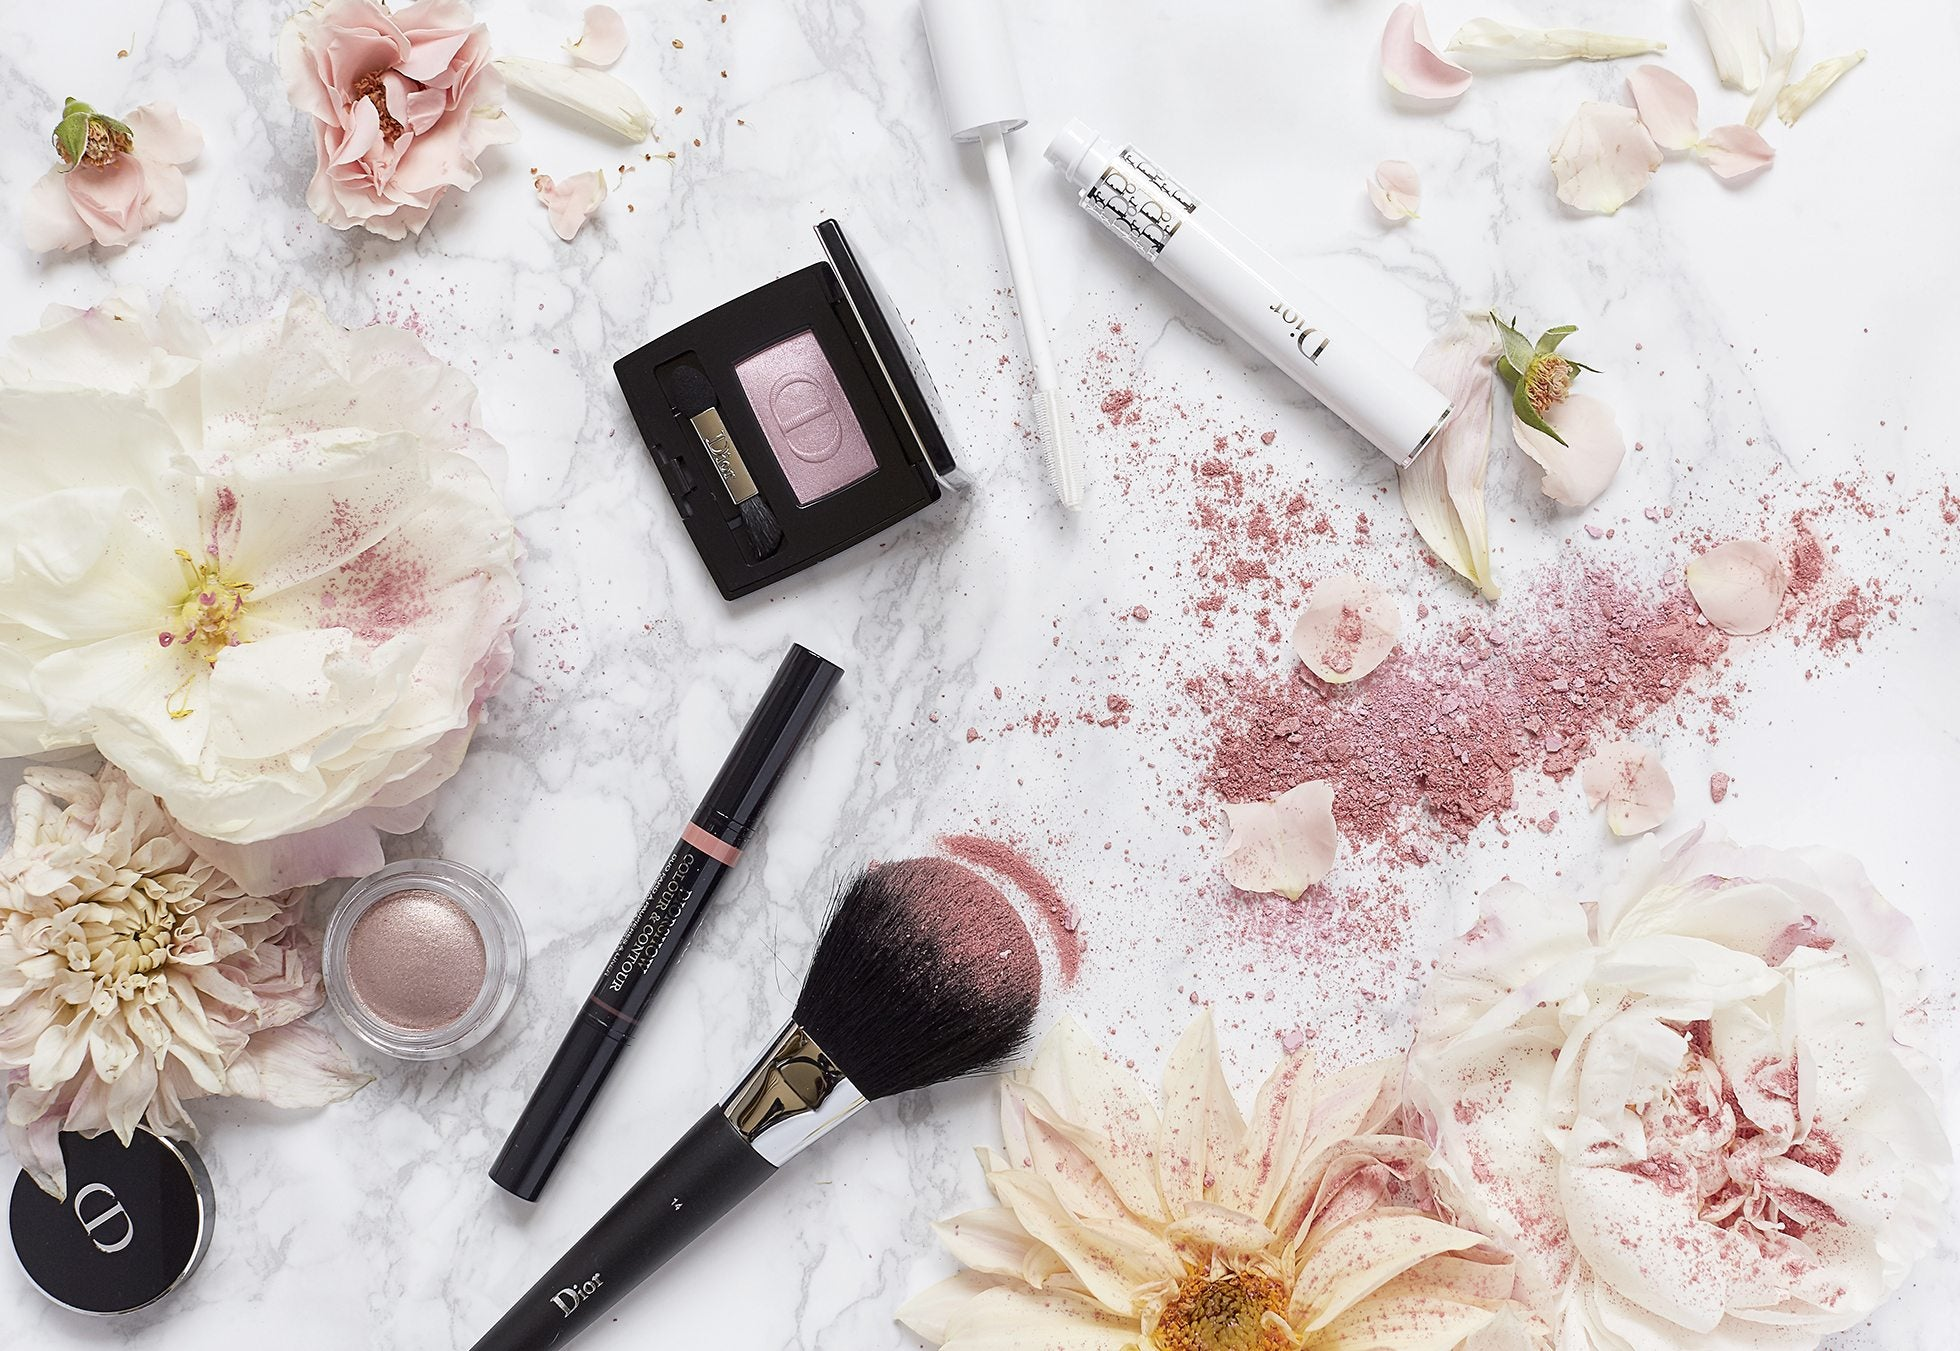 Dior-Beauty-Styling-Flatlay-1